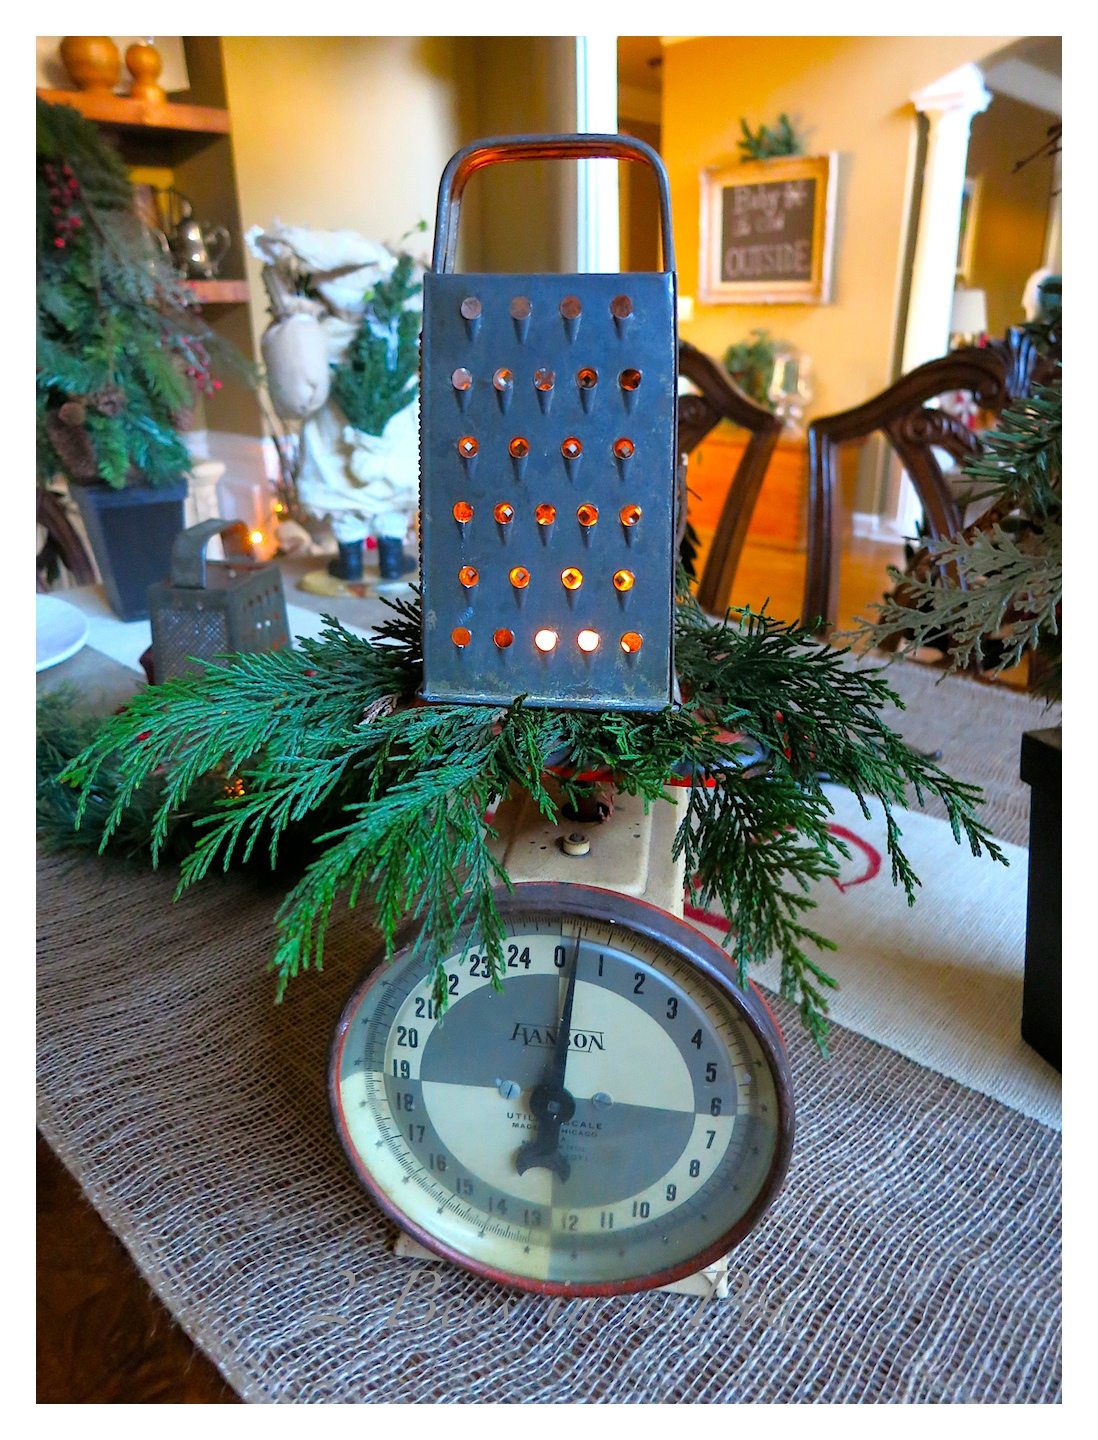 Rustic Christmas - I love the crusty, rusty, chippy and warmth that rustic elements bring to my home for Christmas! This vintage kitchen scale and grater make a wonderful tea light sconce.